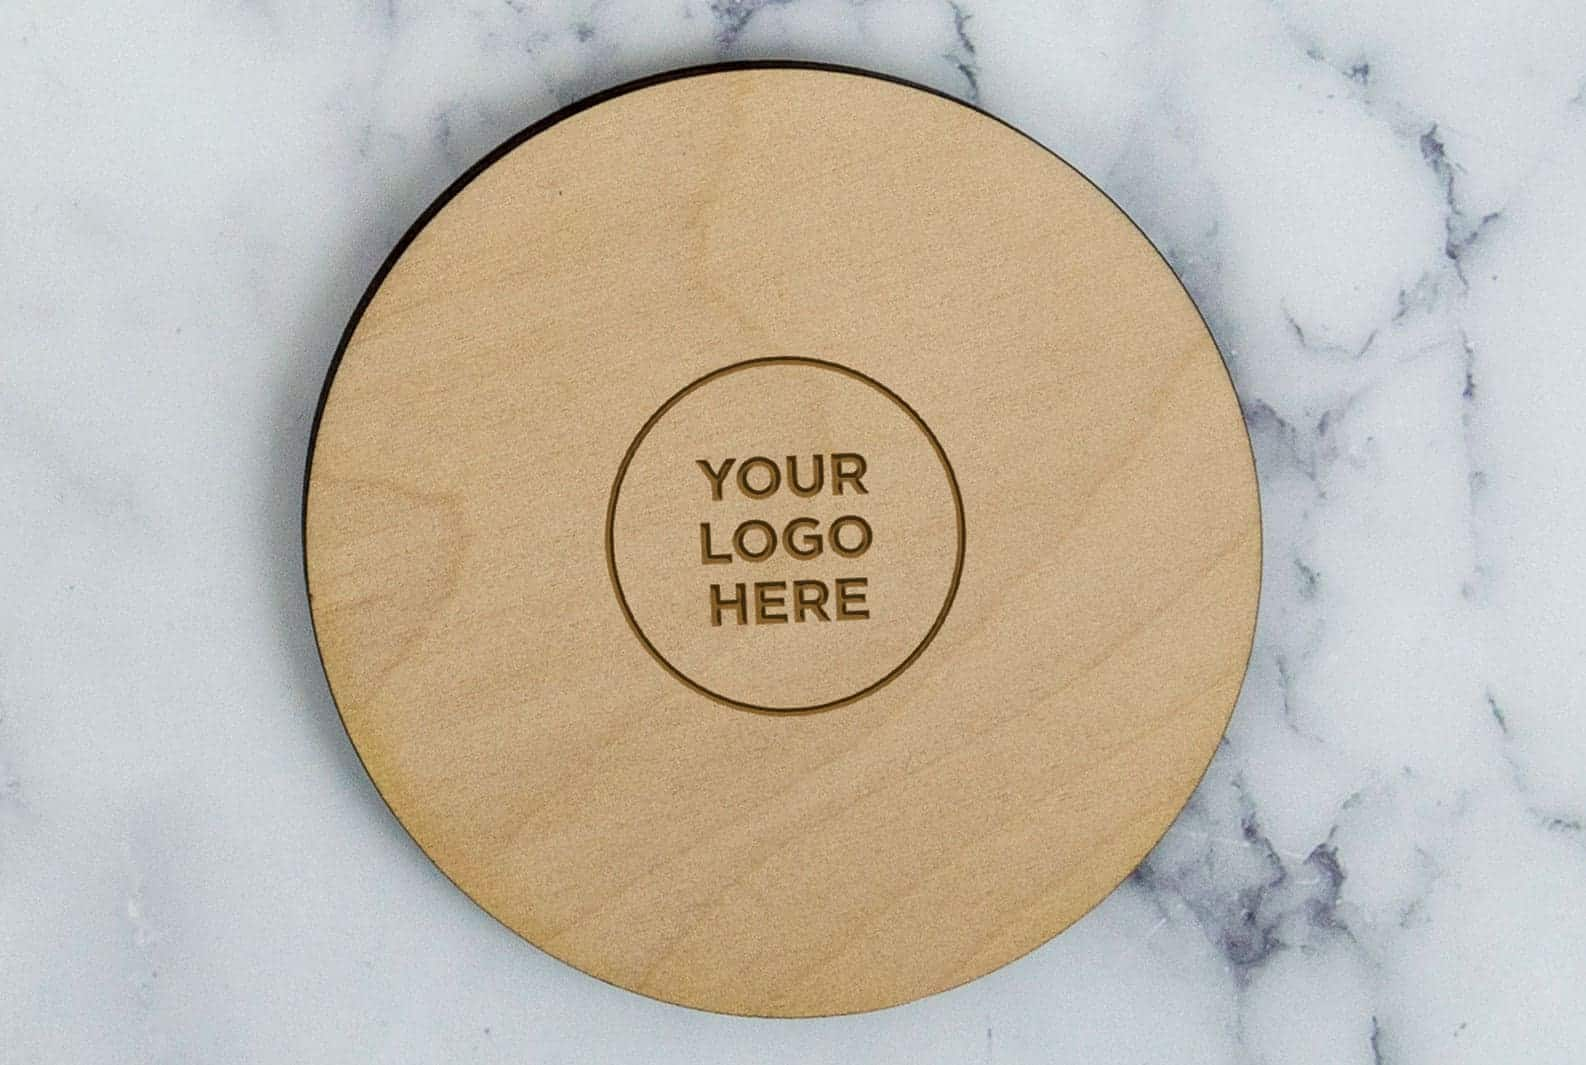 Your logo here coaster